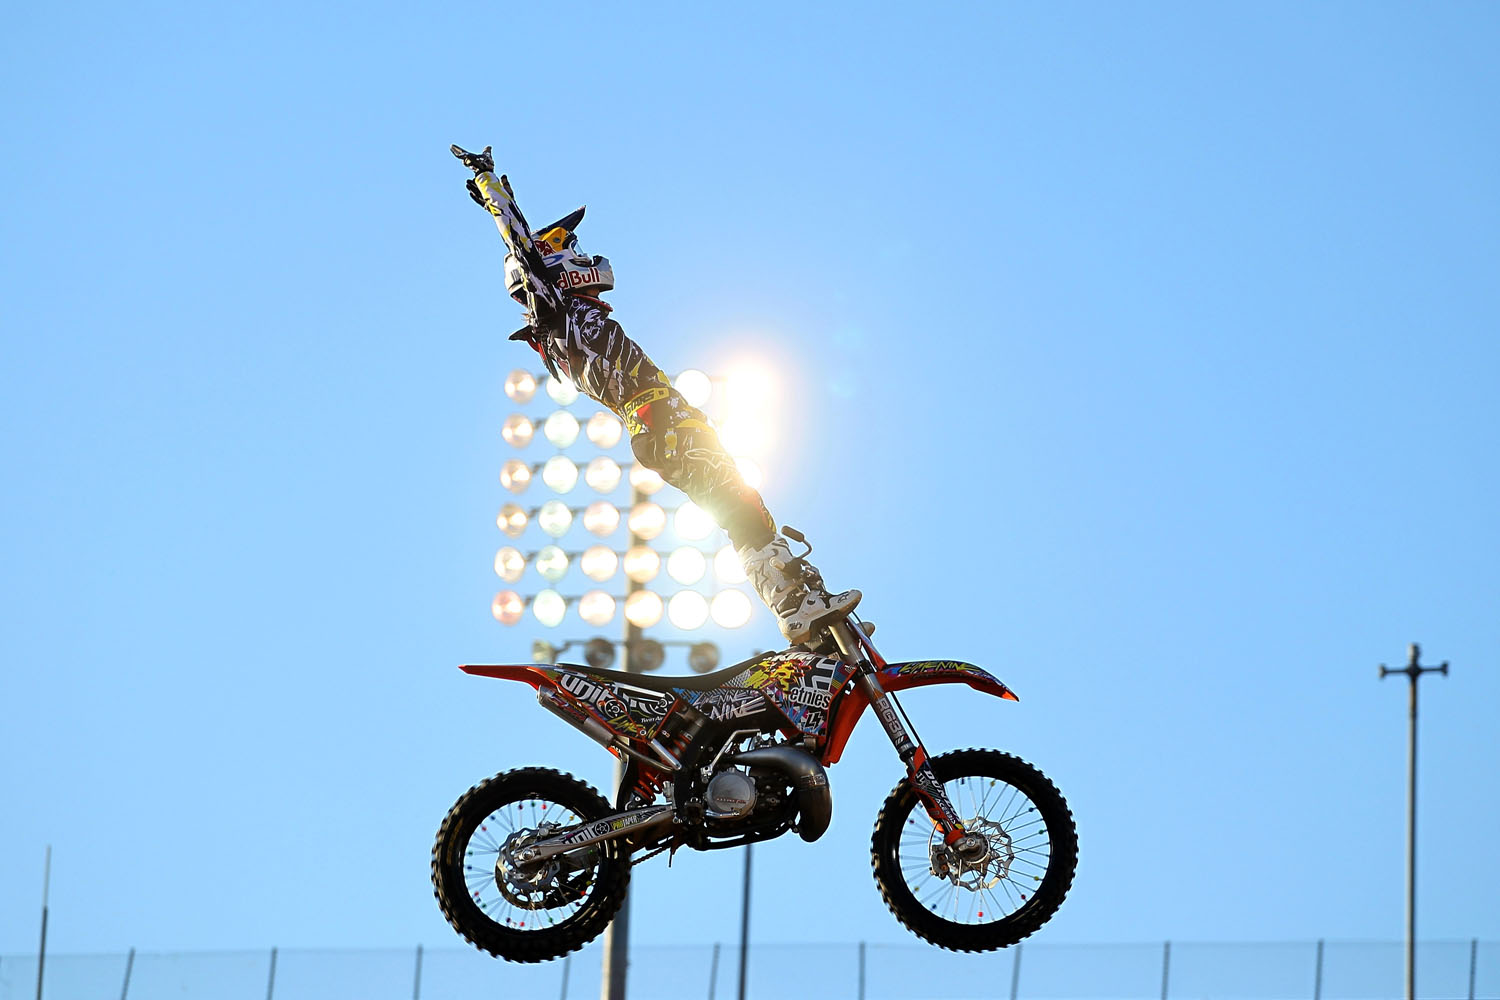 Levi Sherwood does a stunt during the Moto X Freestyle final at the LA Coliseum during X Games 16 on July 29, 2010 in Los Angeles, California.